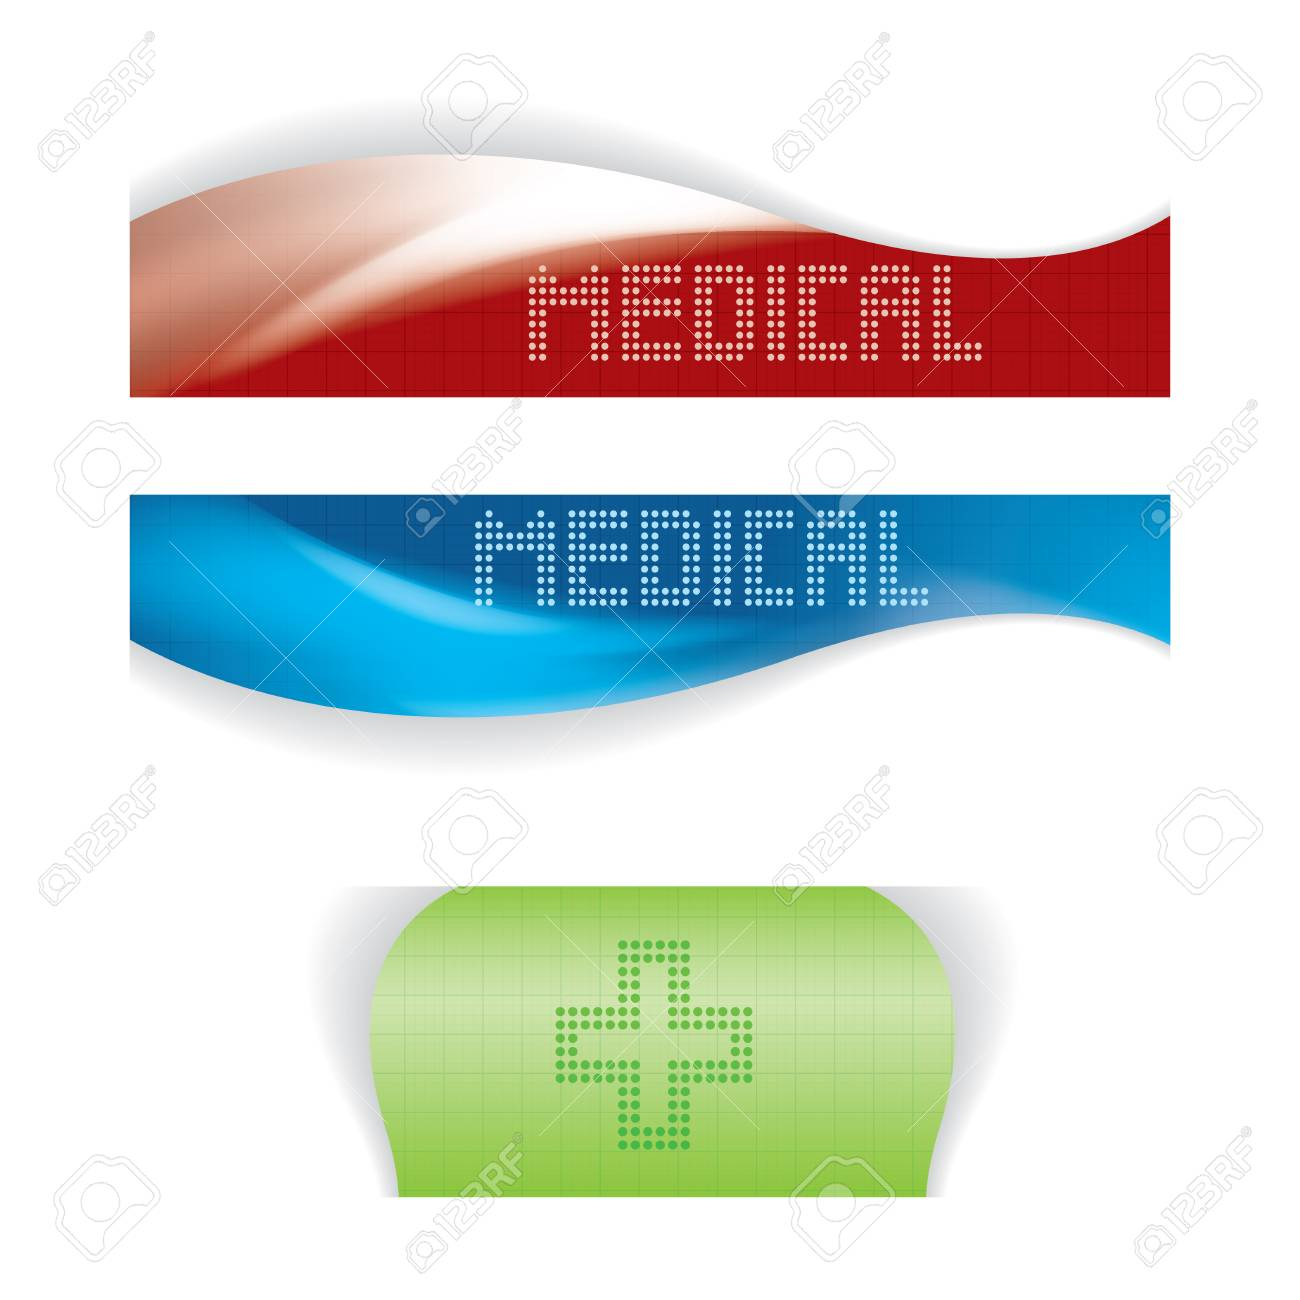 Set of medical banners or website headers Stock Vector - 24873031